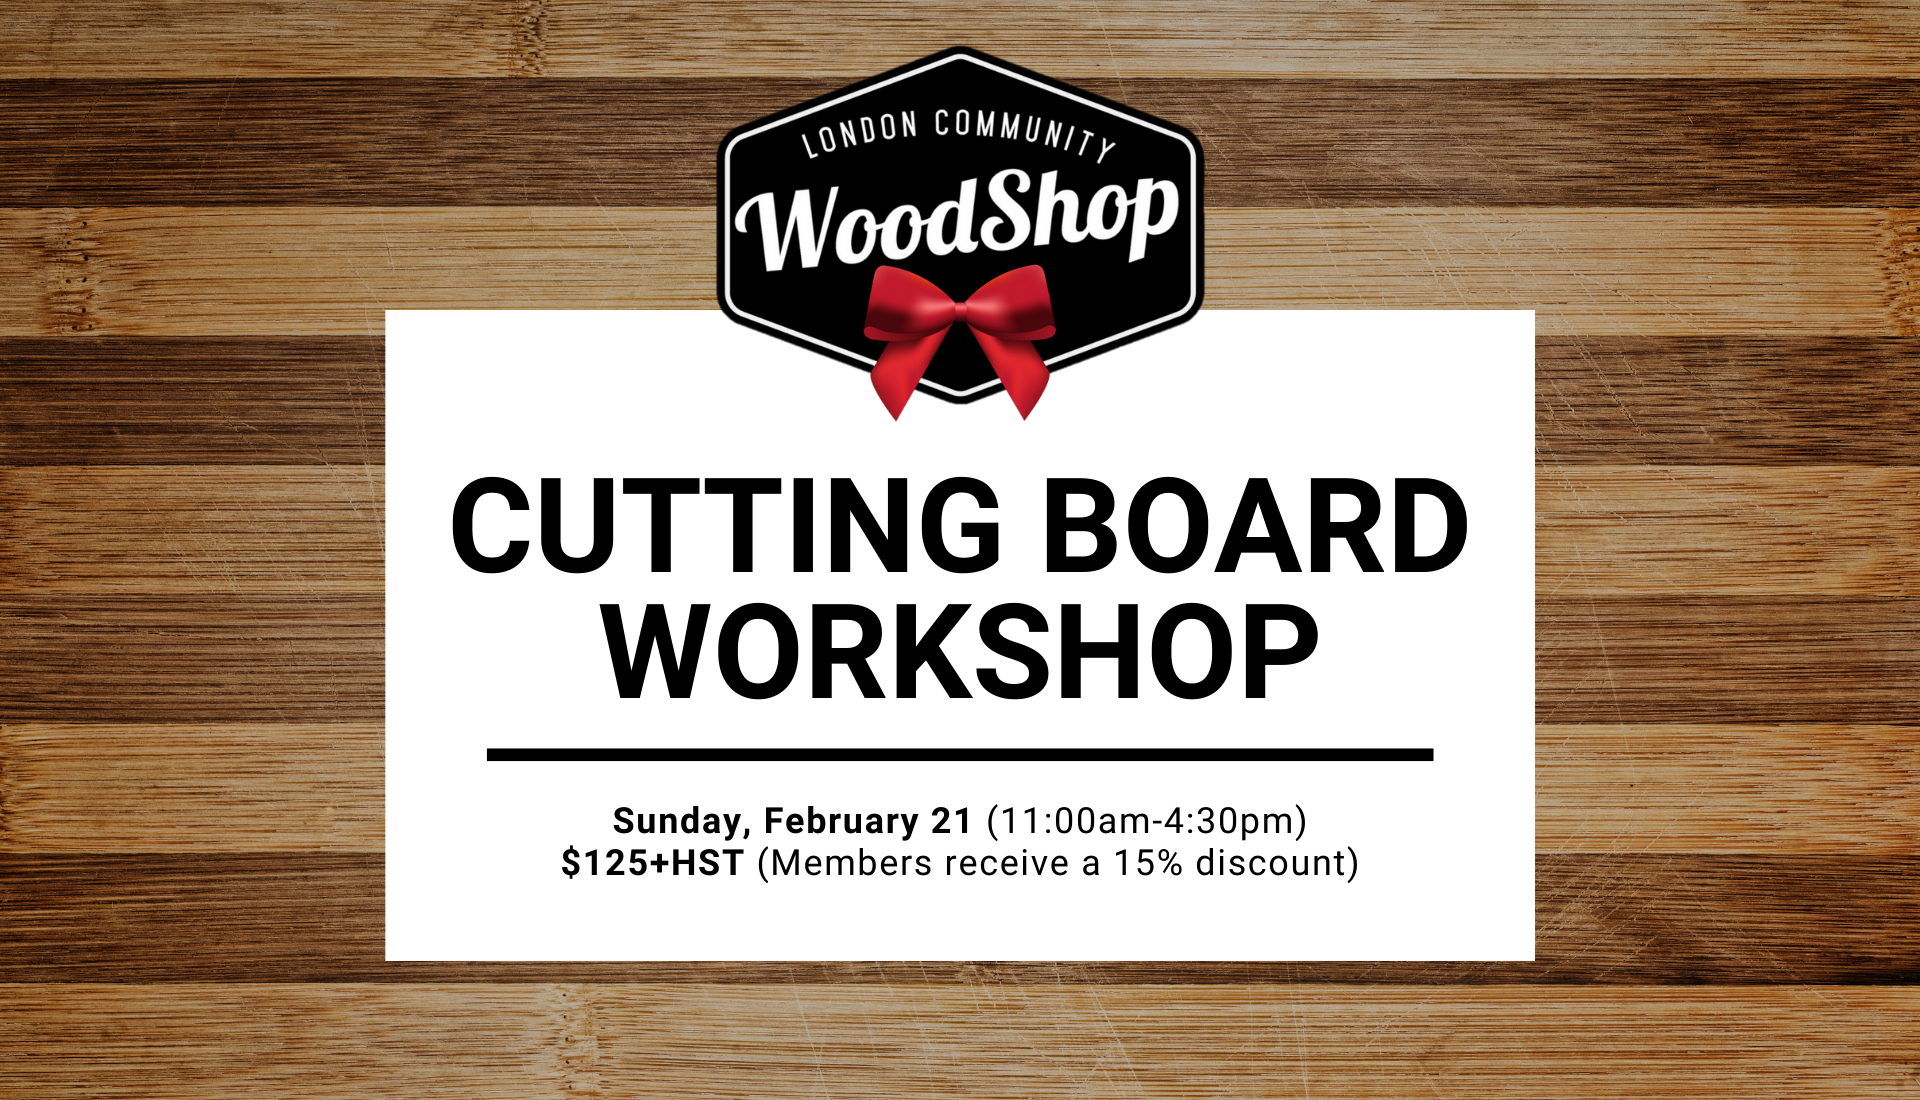 _Cutting Board Workshop - Sunday, February 21